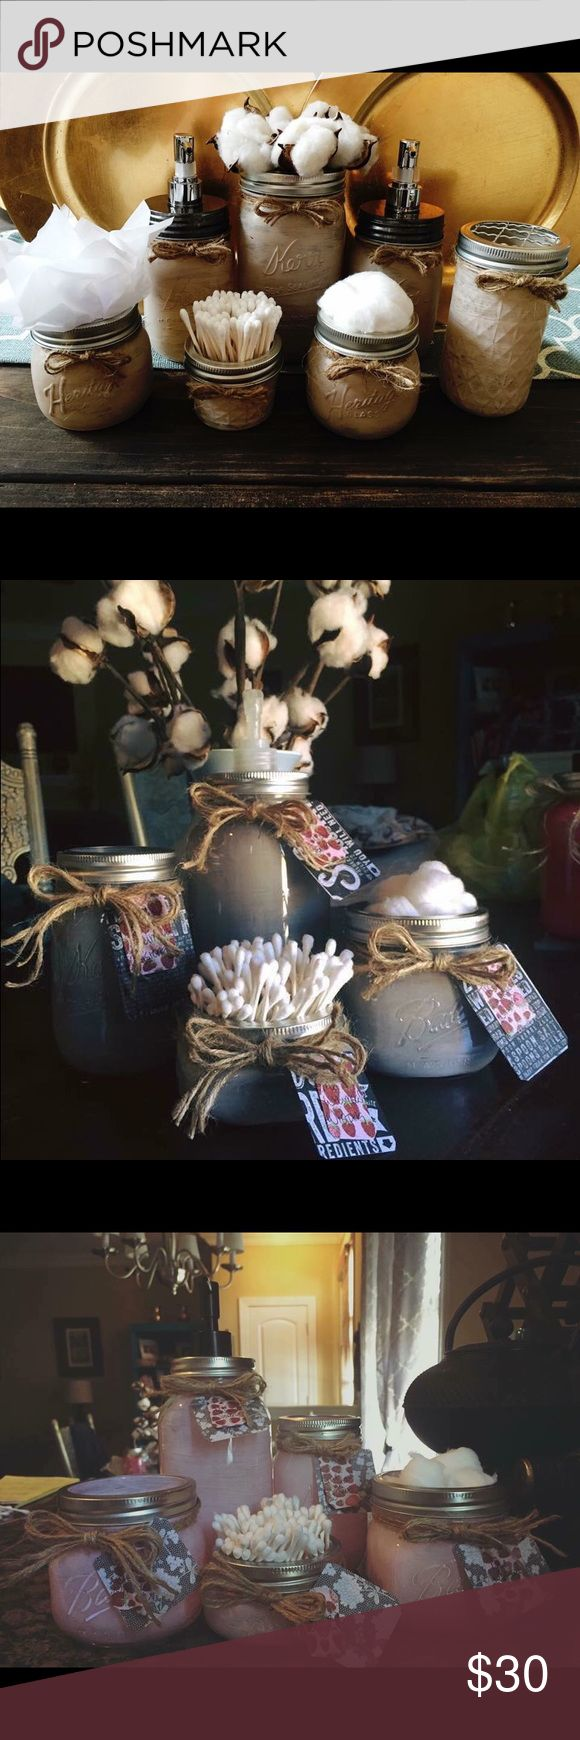 Mason Jar Bathroom Sets Made to order  Small - $20 (Small soap dispenser, Q-Tip holder, cotton ball holder, toothbrush holder)   Medium set -$25 (Large soap dispenser, Q-Tip holder, cotton ball holder, toothbrush holder)  Large set - $30 (Large soap dispenser, Q-Tip holder, cotton ball holder, toothbrush holder, vase or candle holder)   XL set- $35 (Large soap dispenser, Q-Tip holder, cotton ball holder, toothbrush holder, vase, candle holder)   Gift baskets available upon request- examples…